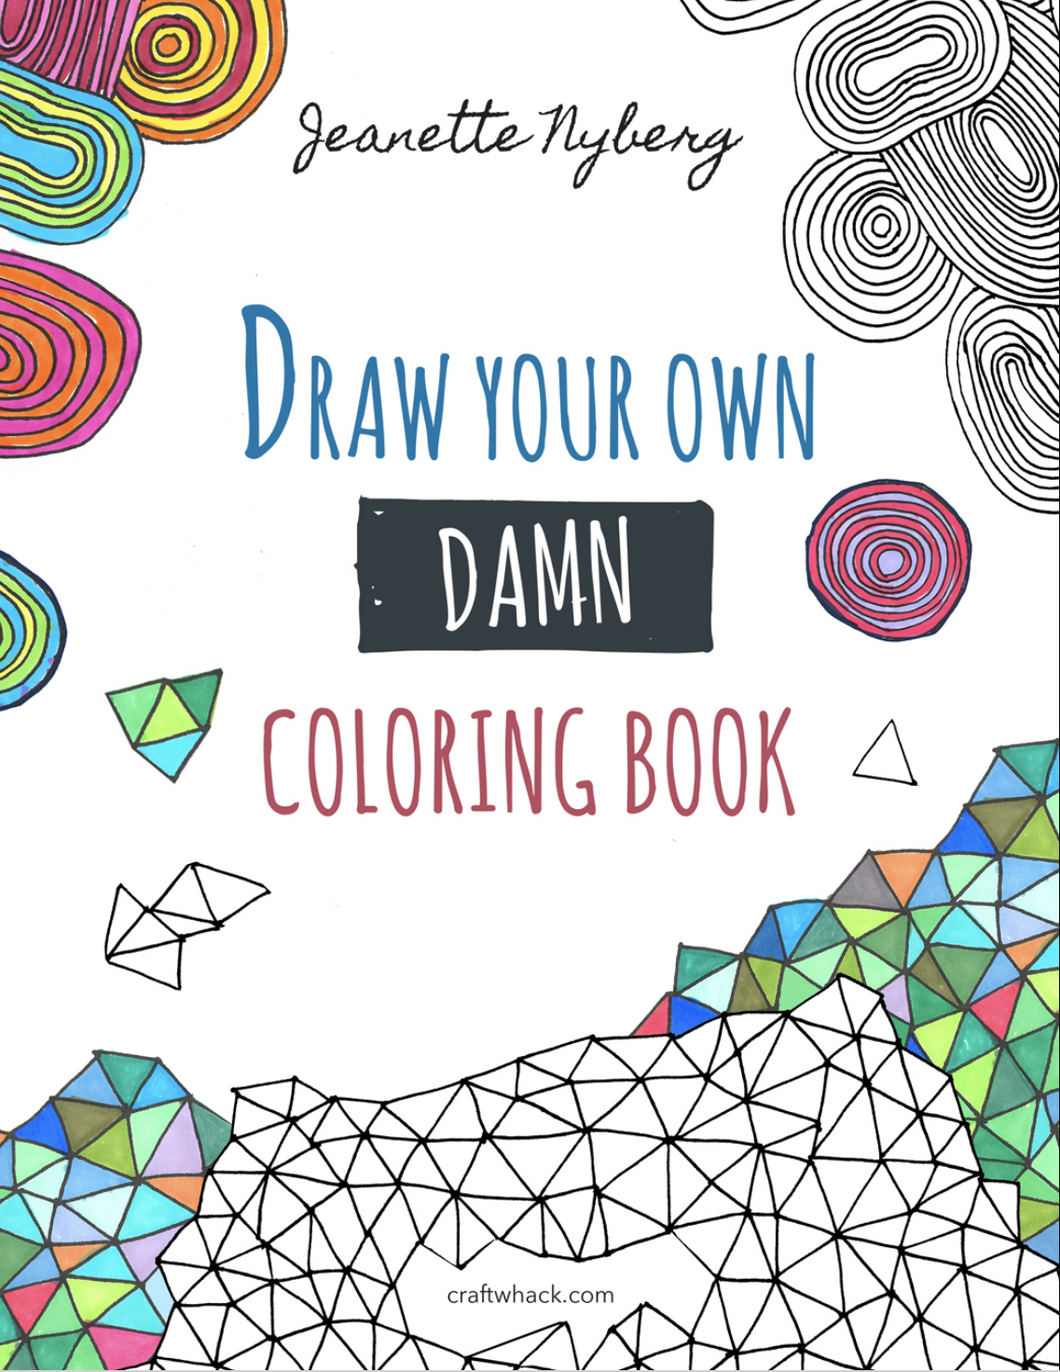 Draw Your Own Damn Coloring Book